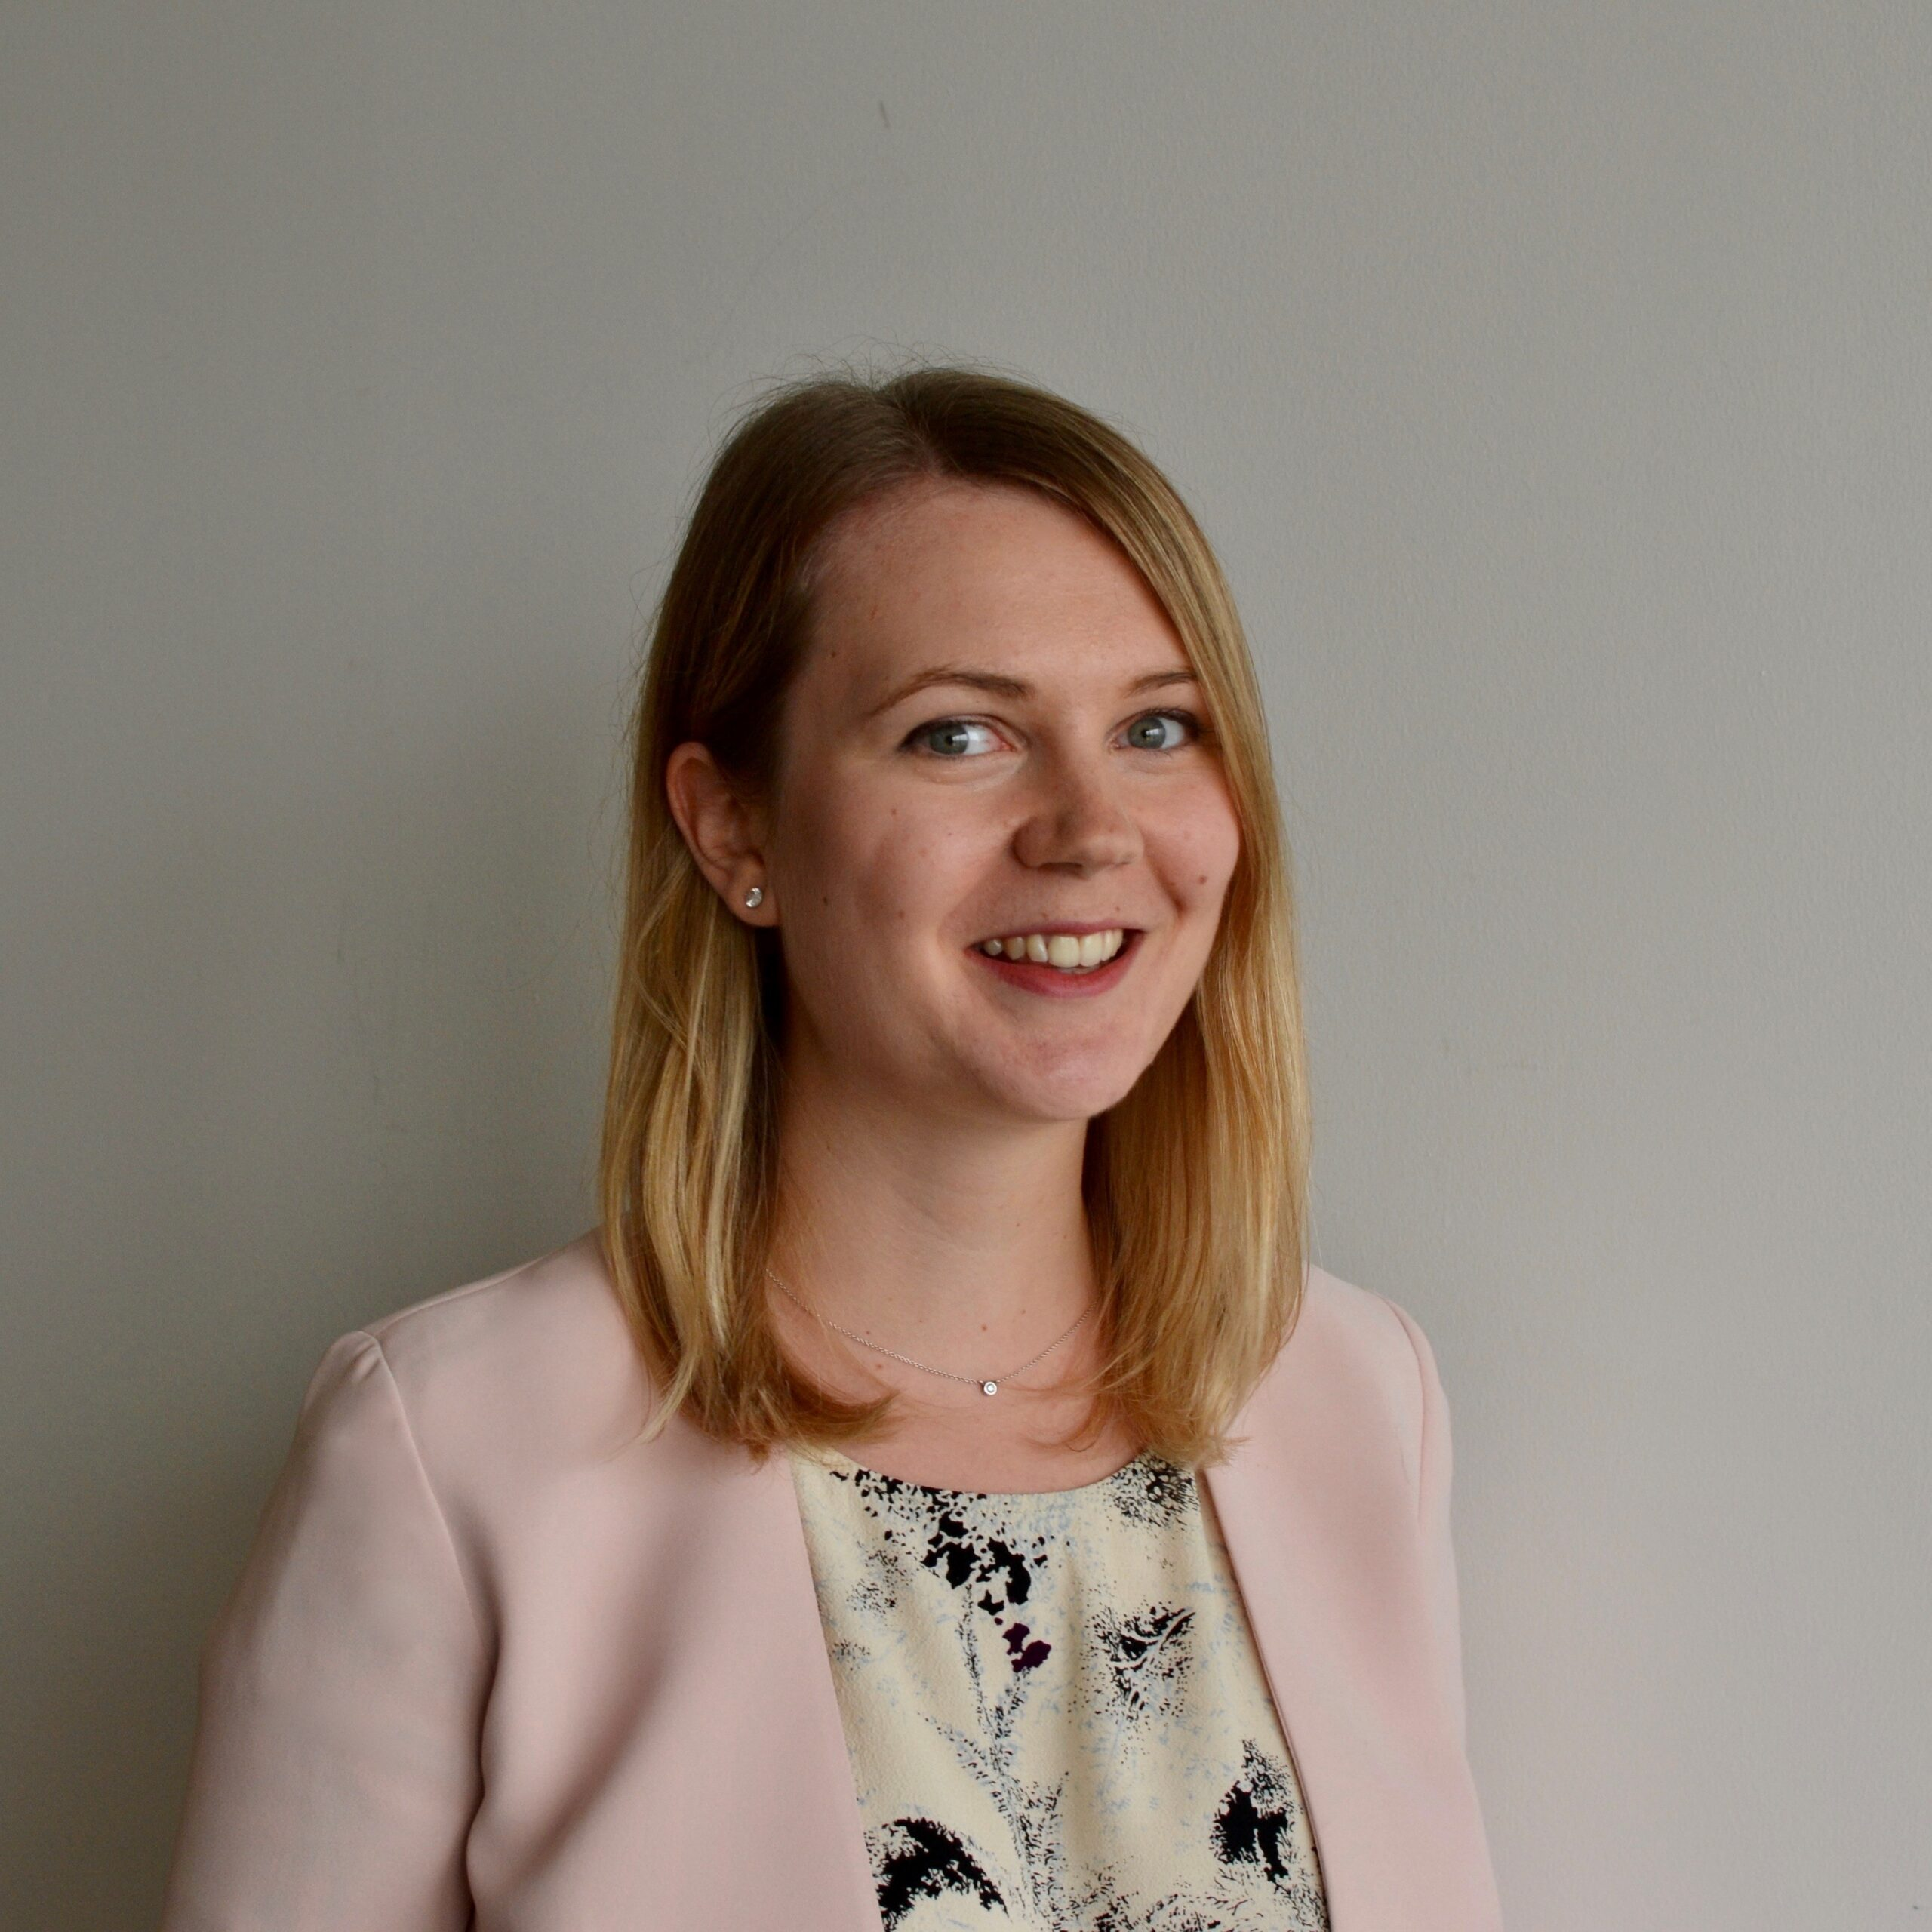 Jo Chambers, Head of Programme at ADPH London